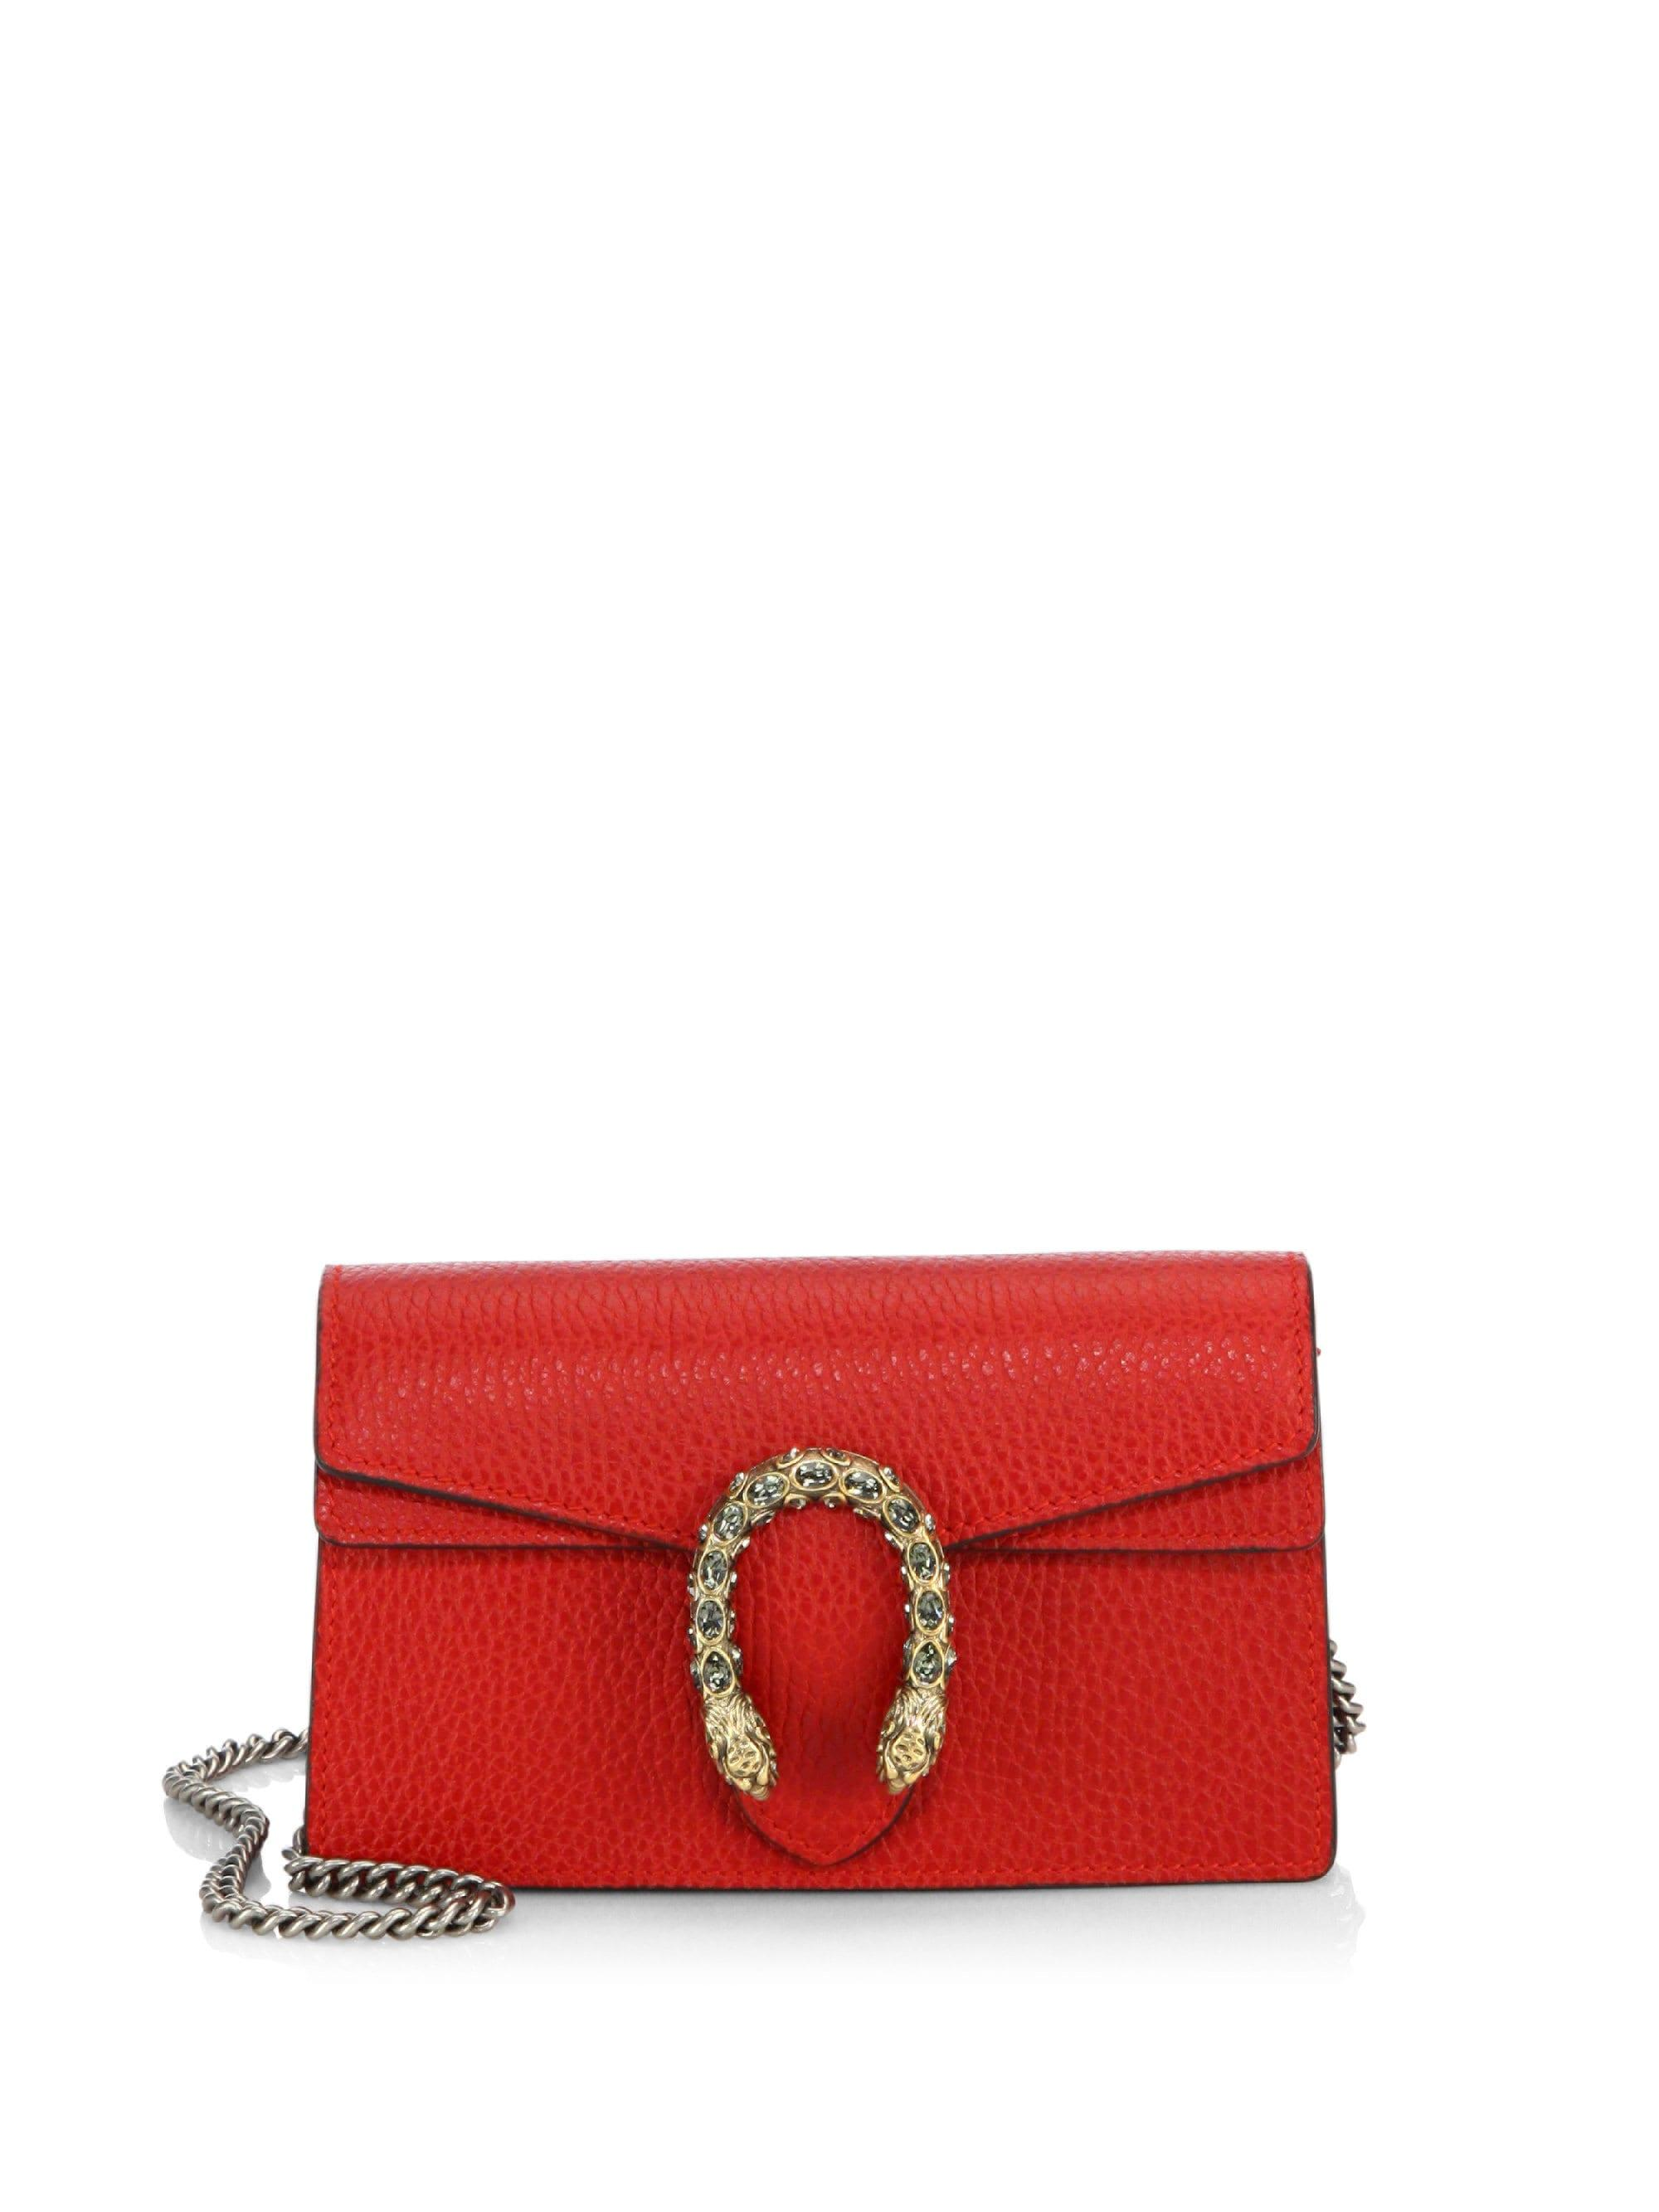 c7d2fdece869a6 Gucci Women's Dionysus Leather Mini Chain Shoulder Bag - Red in Red ...